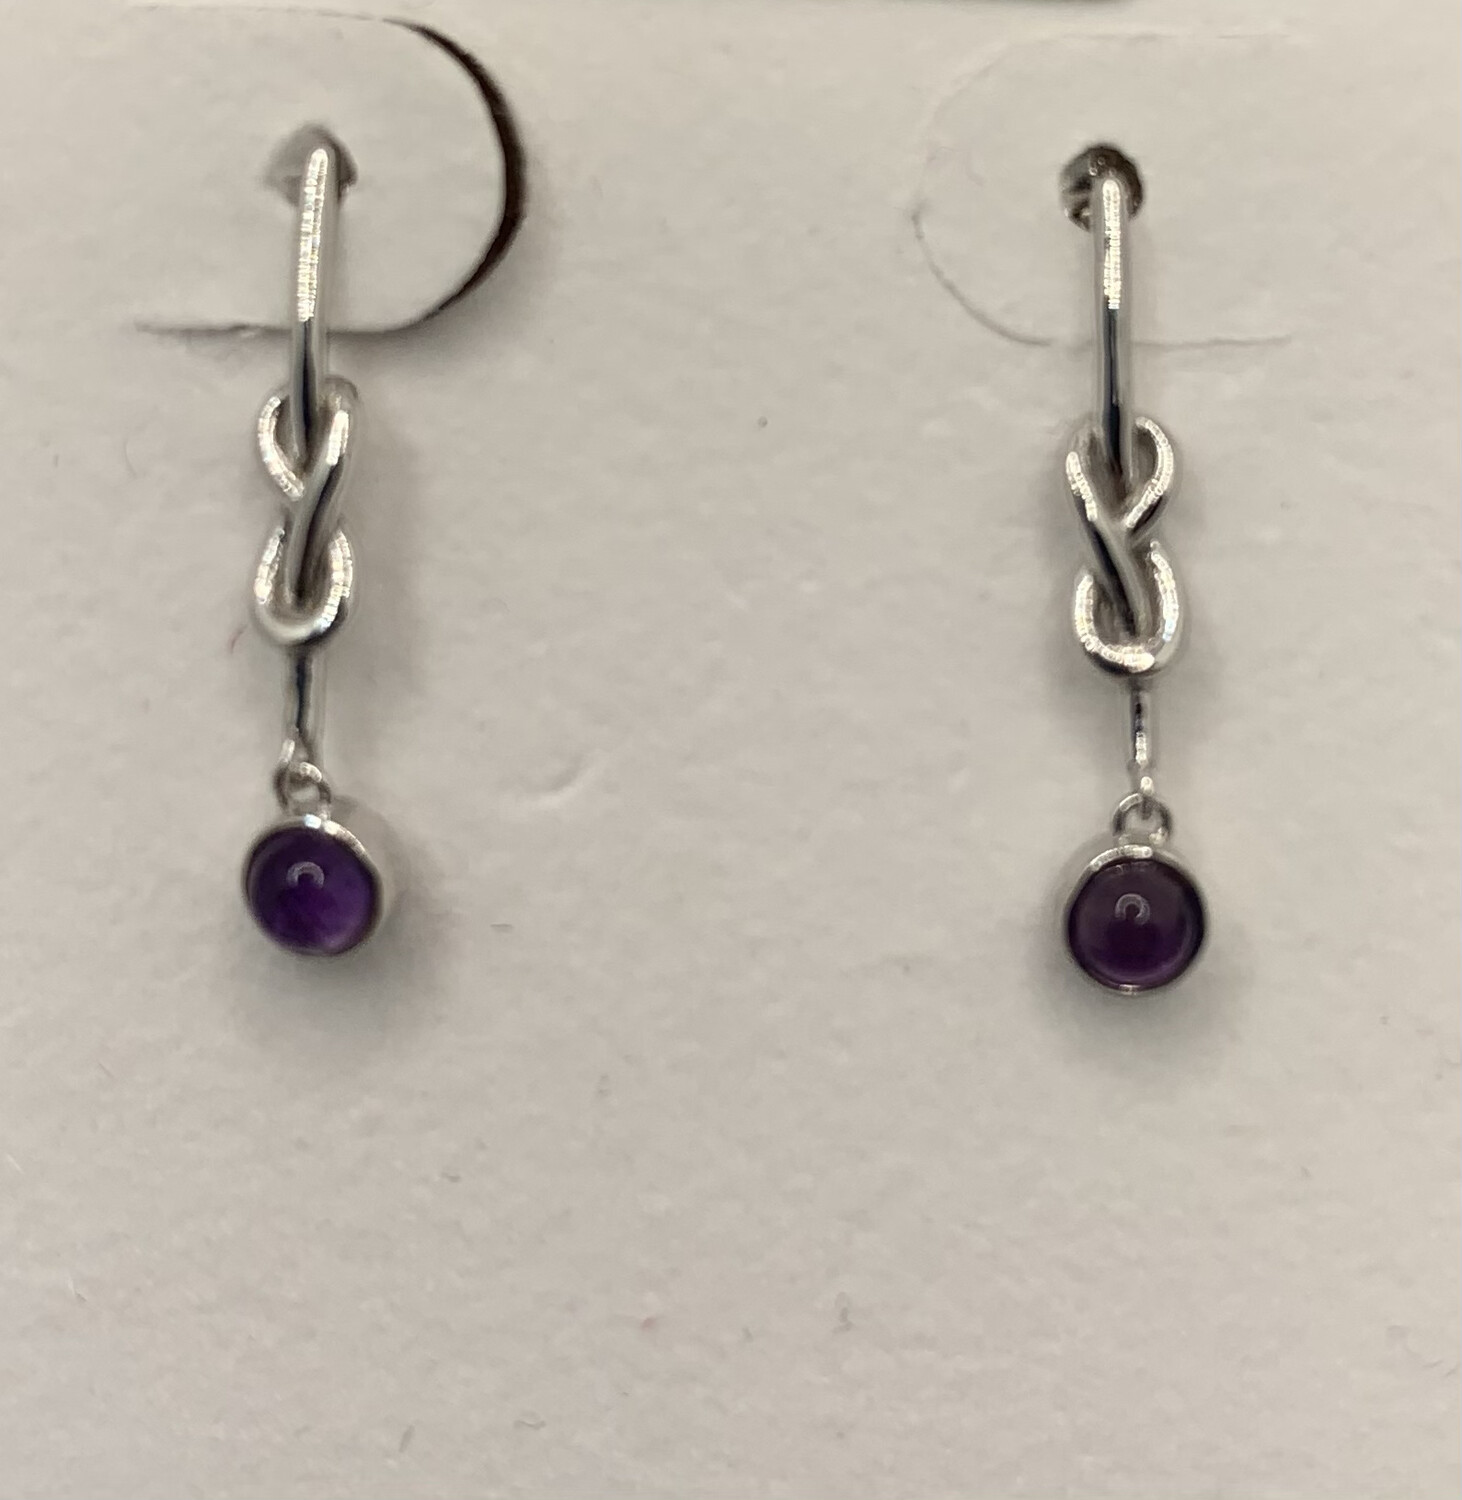 Sterling Silver Knotted Lab Amethyst Post Earrings